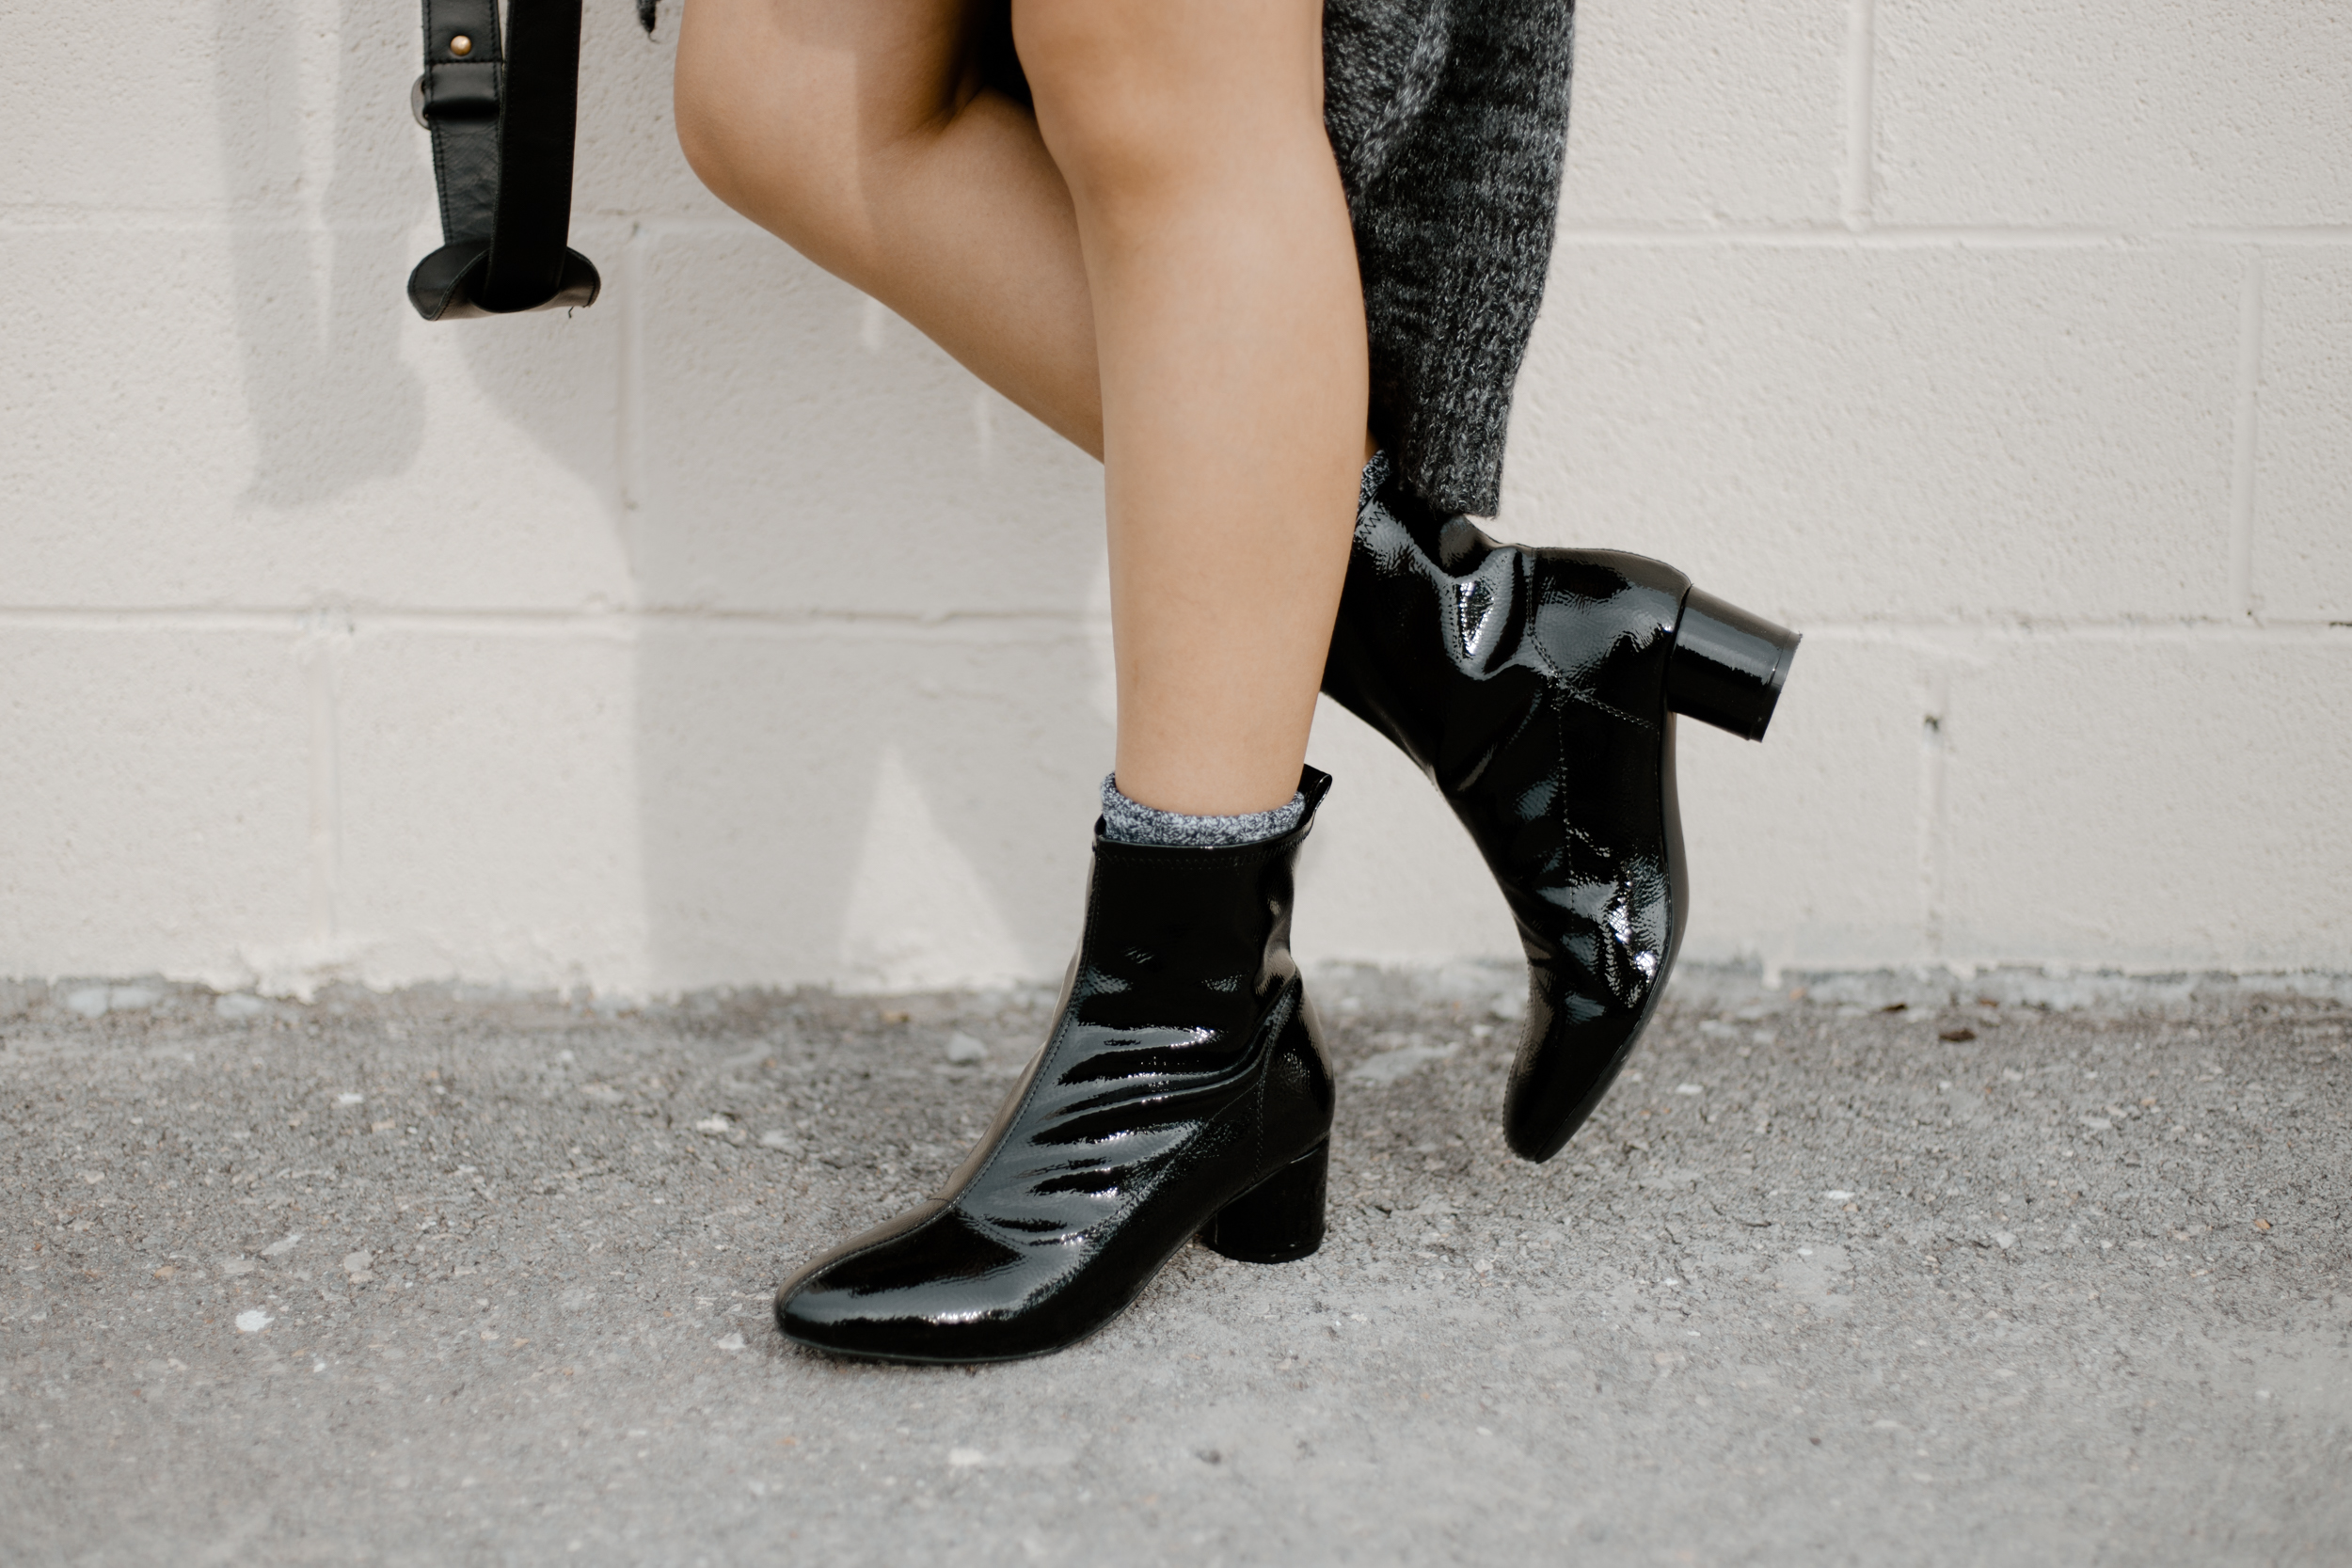 Maybree Boots from Justfab